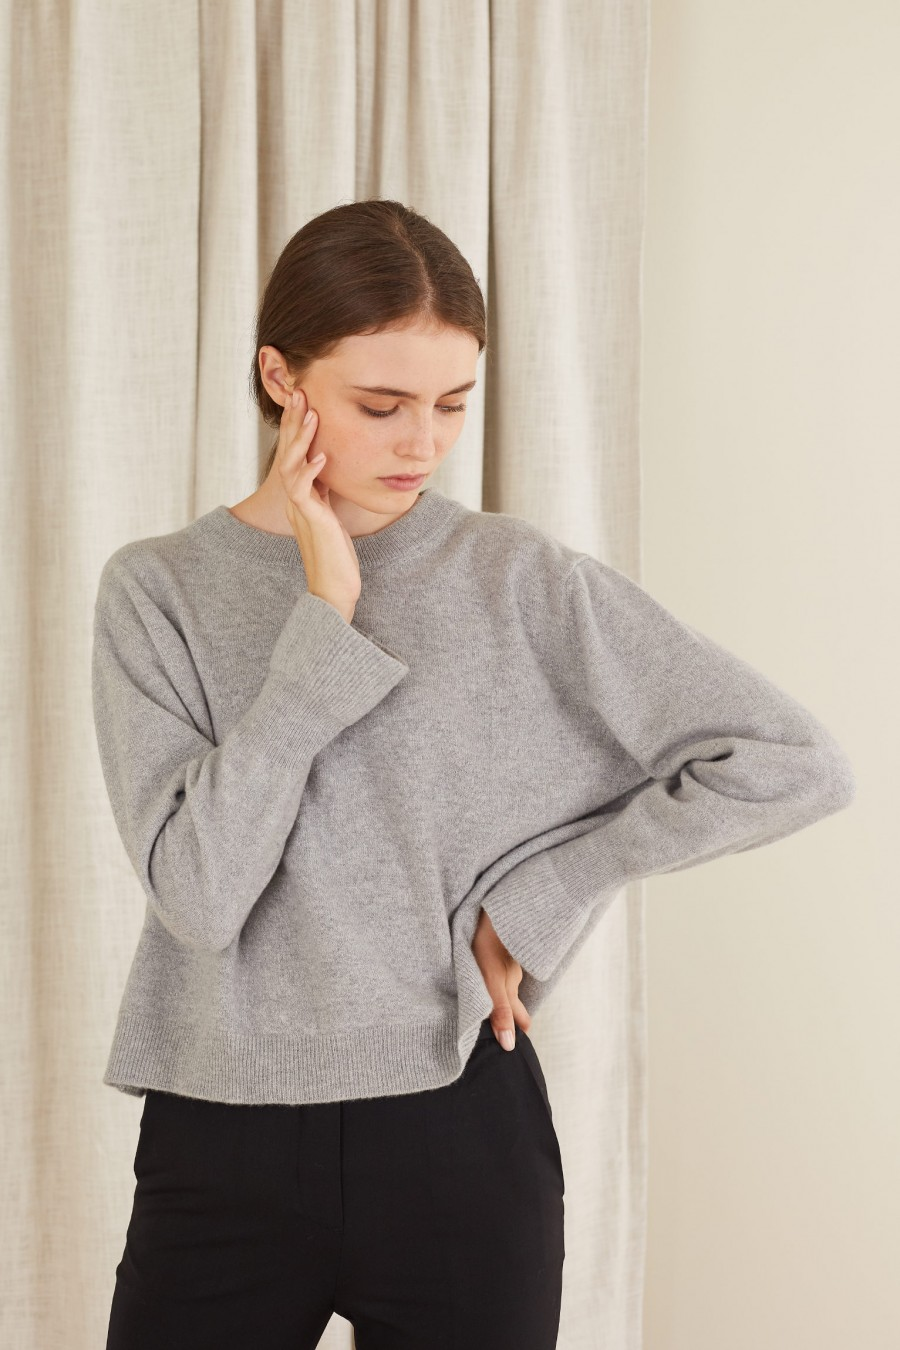 Lamé wool sweater with ruffled cuffs